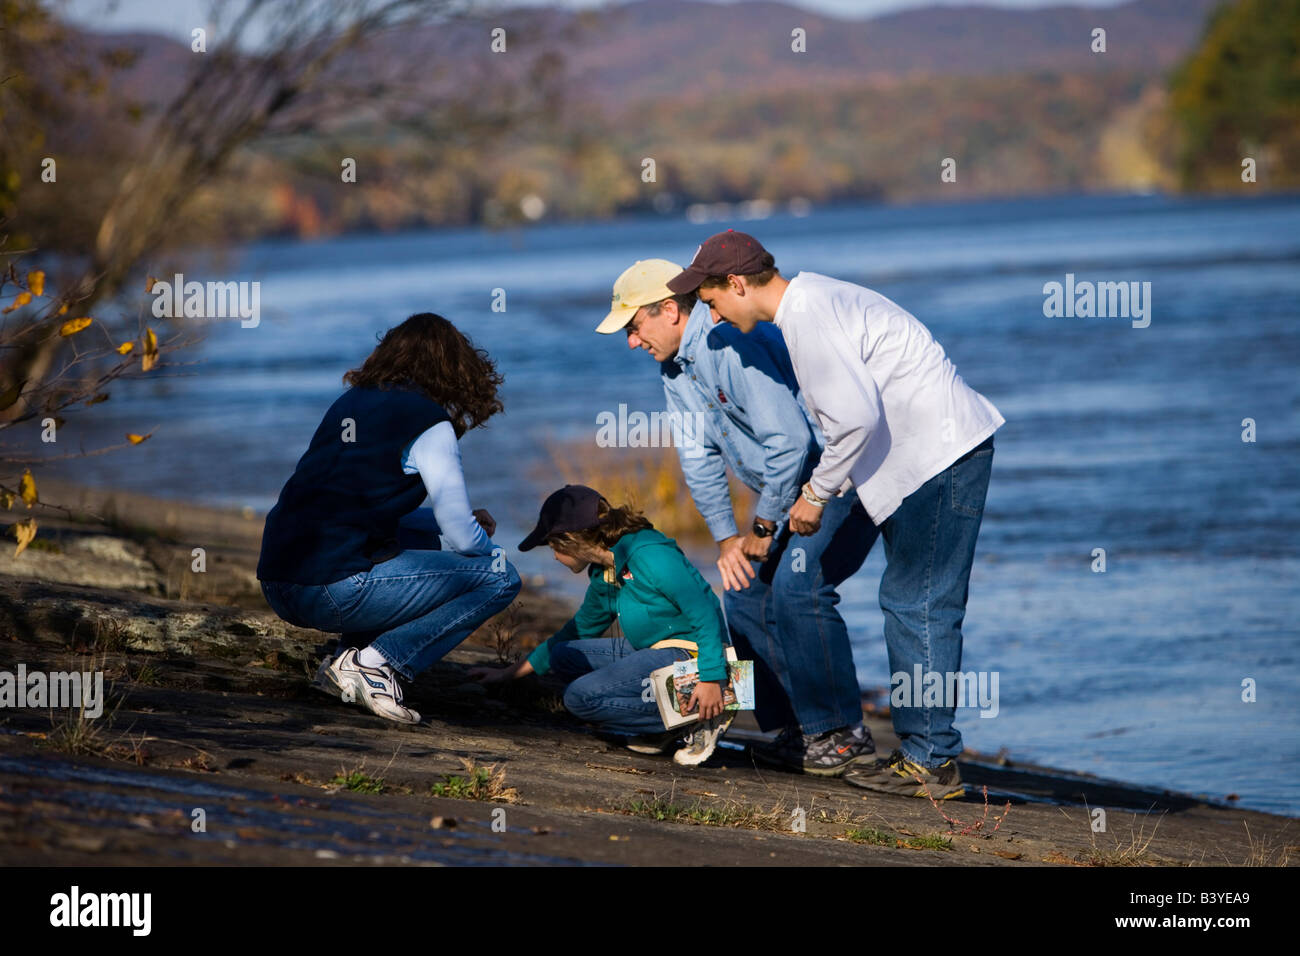 A family studies nature on the banks of the Connecticut River in Holyoke, Massachusetts Stock Photo